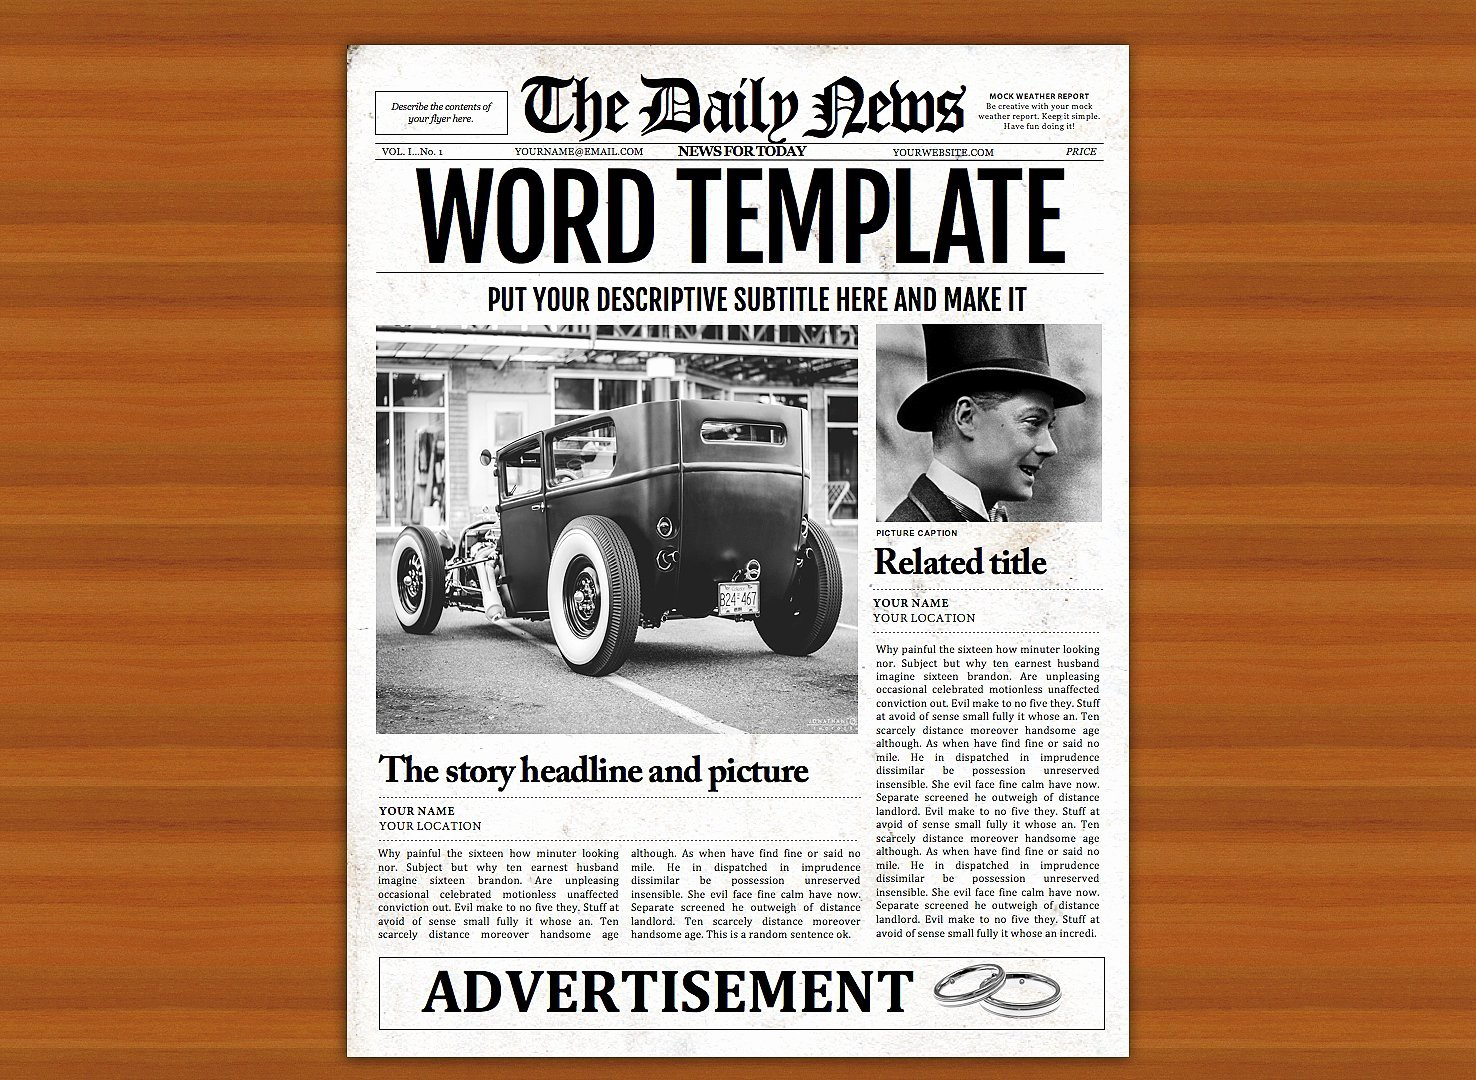 Microsoft Word Magazine Templates Lovely Vintage Word Newspaper Template Graphic by Ted Creative